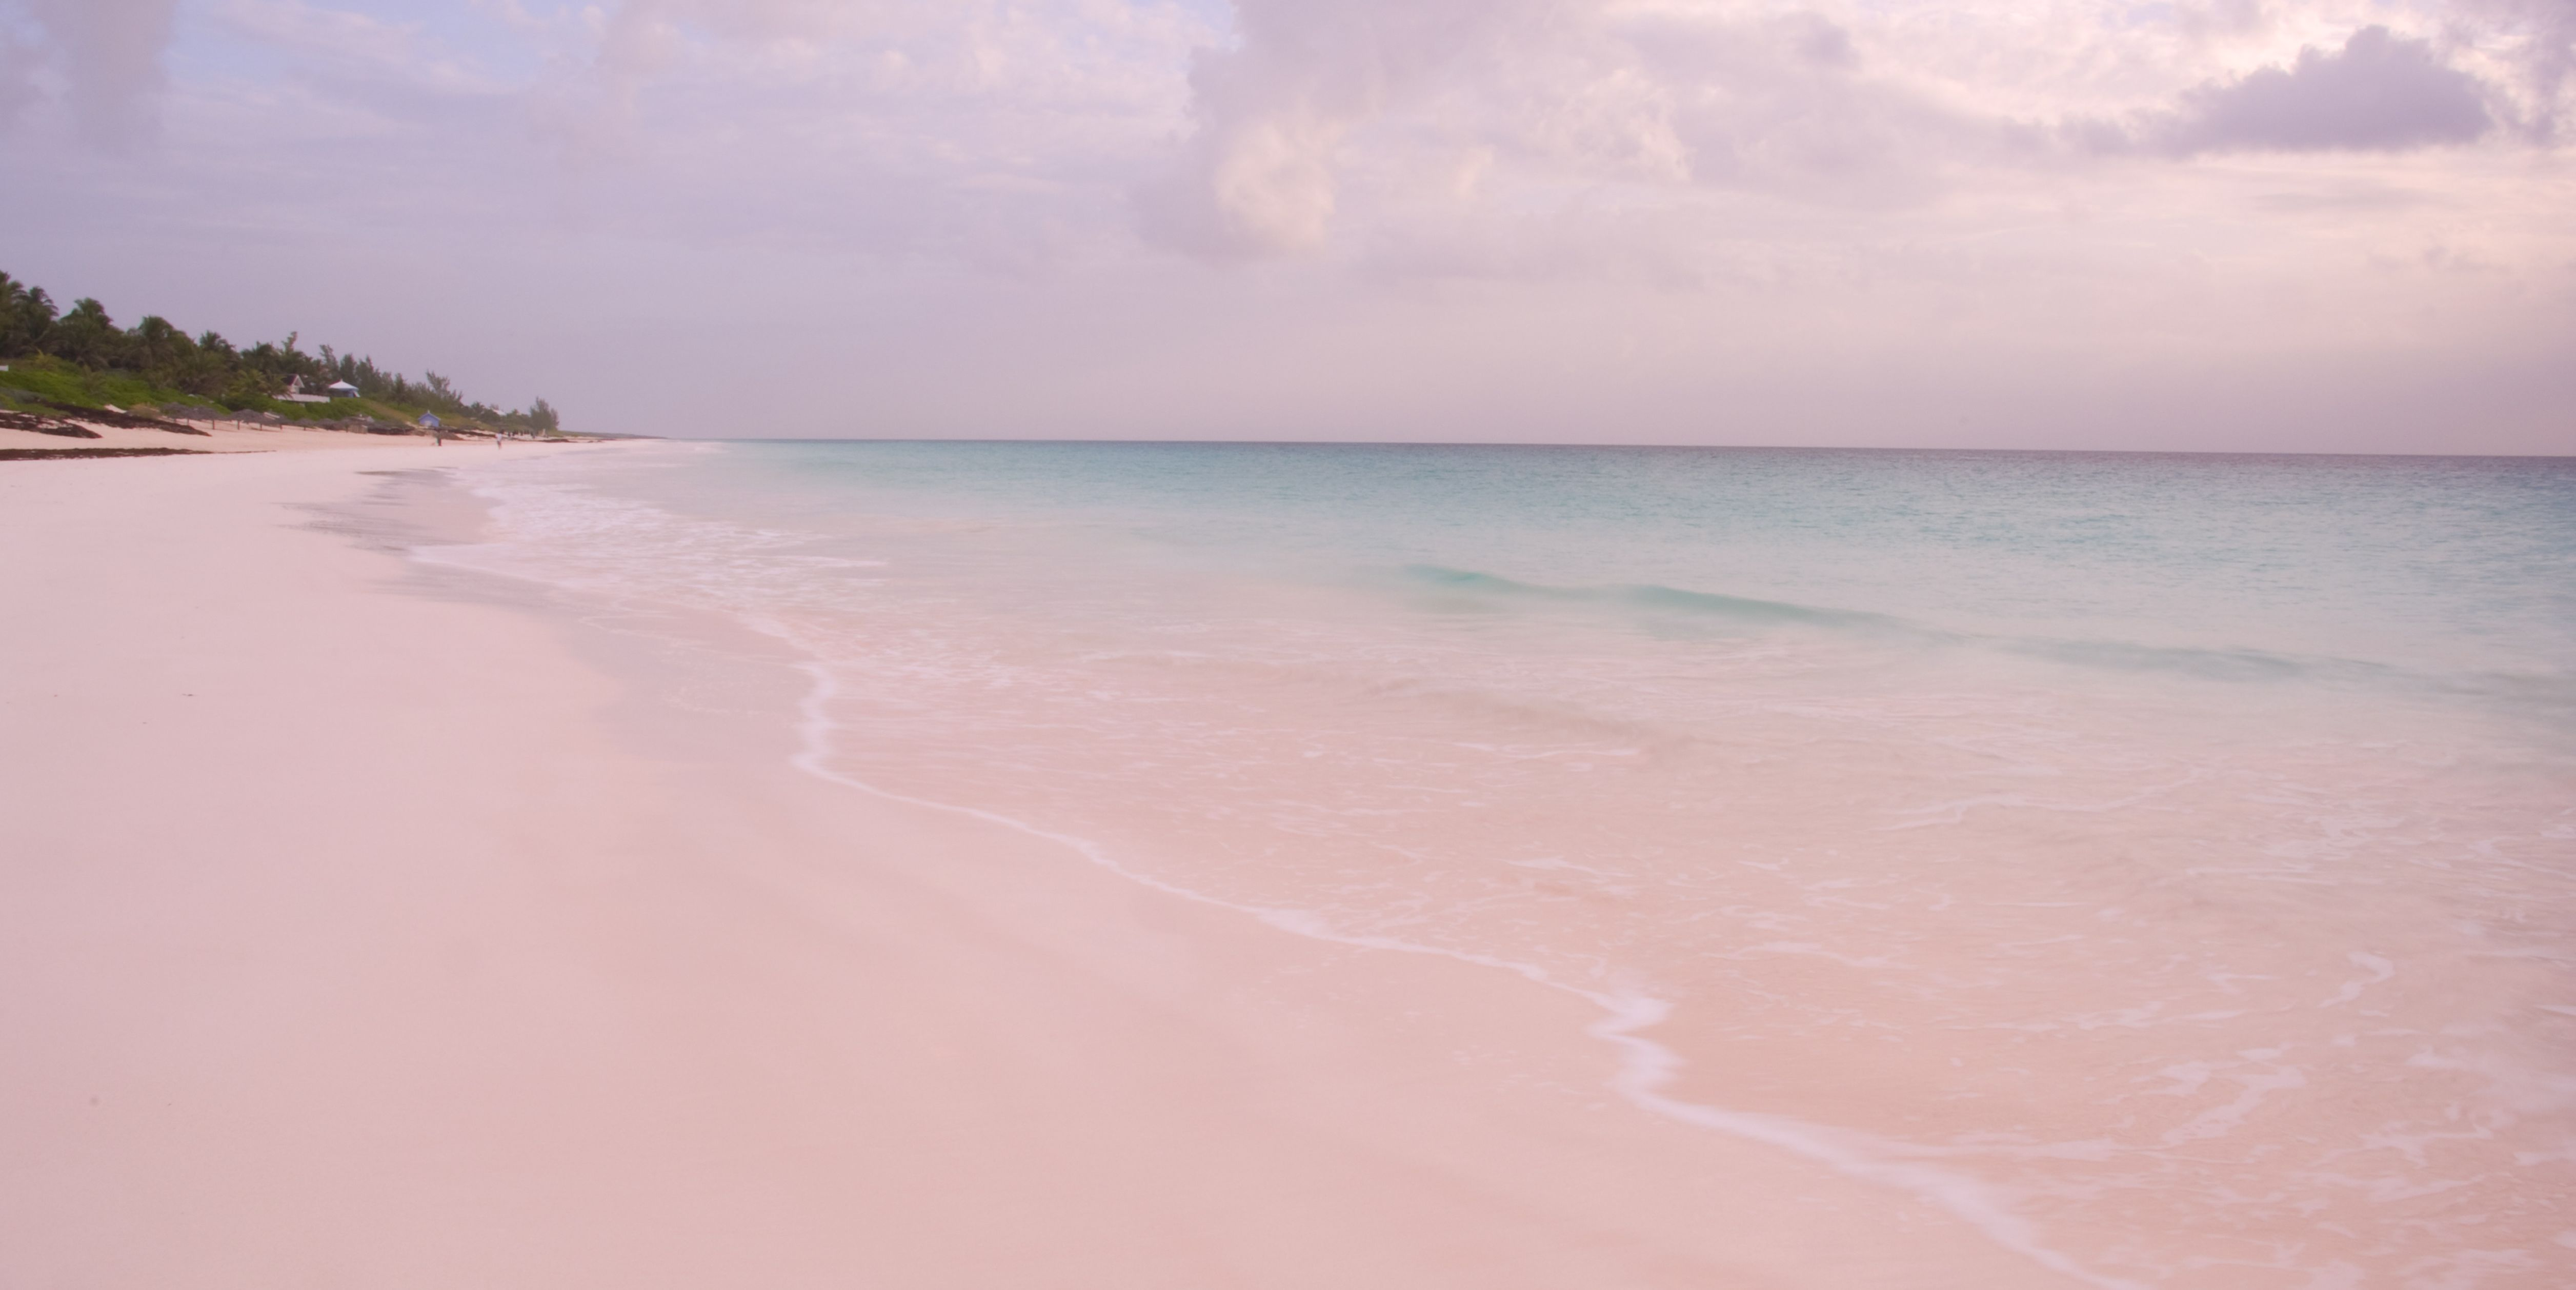 This Pink Sand Beach In The Bahamas Will Top Your Travel Bucket List